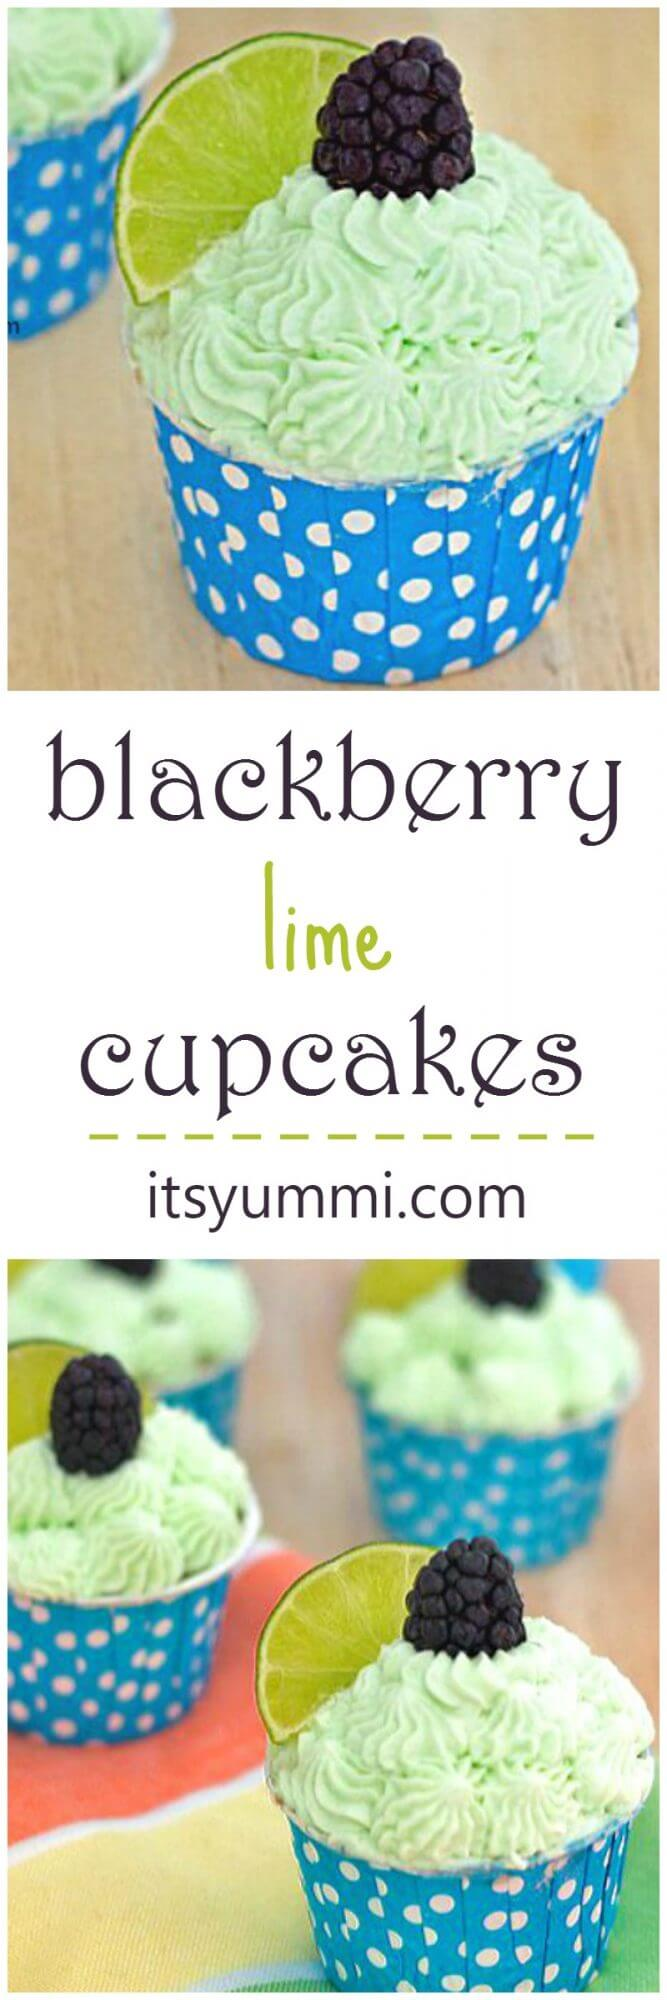 Blackberry Lime Cupcakes Recipe - Cupcakes from scratch (post has instructions on how to make them from a boxed cake mix, too!) ItsYummi.com